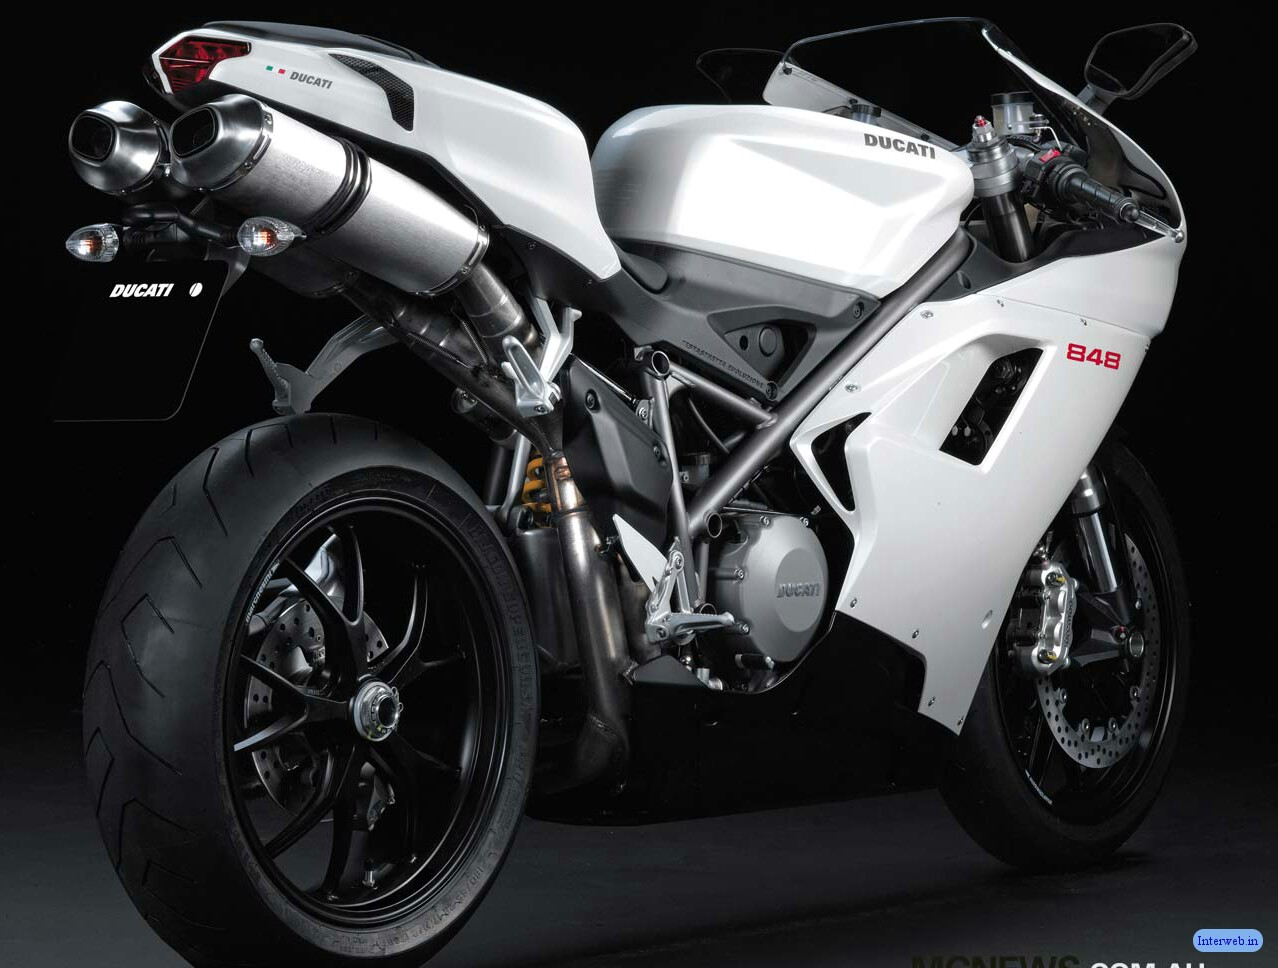 New Free Motorcycles Ducati 848 Heavy Bike Wallpapers